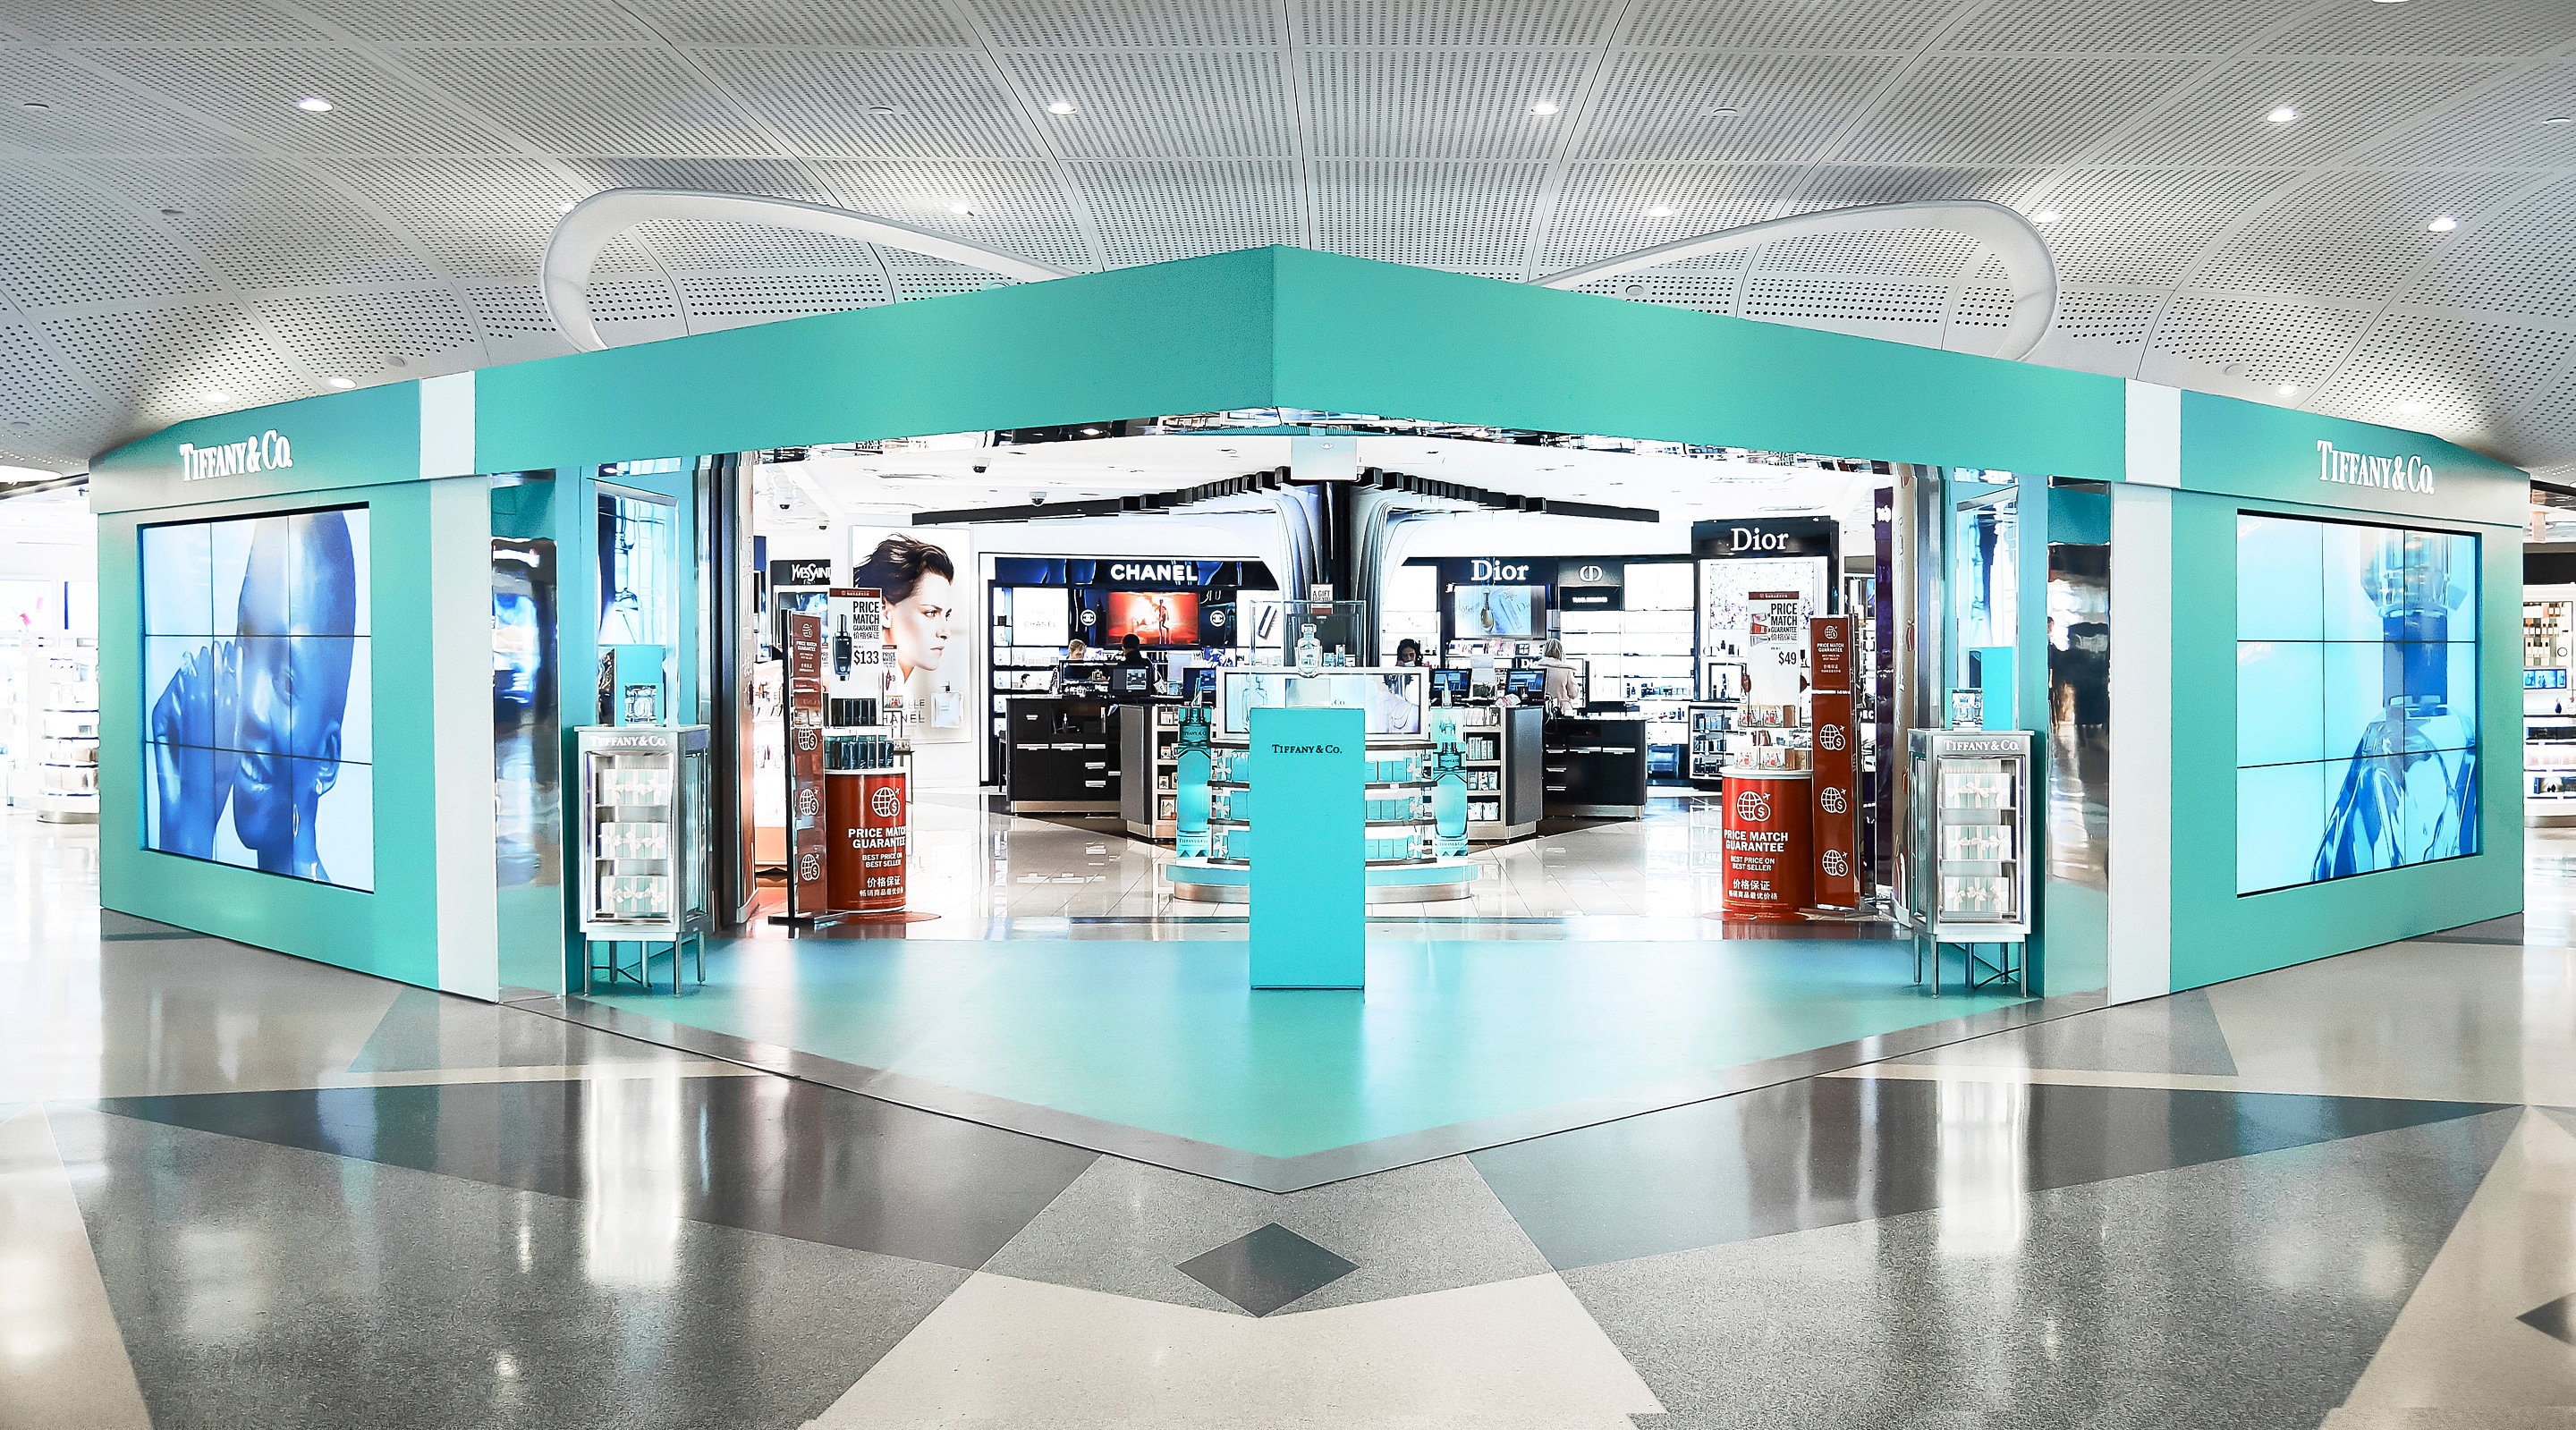 Iconic Tiffany Blue Box Comes To Life at JFK Airport